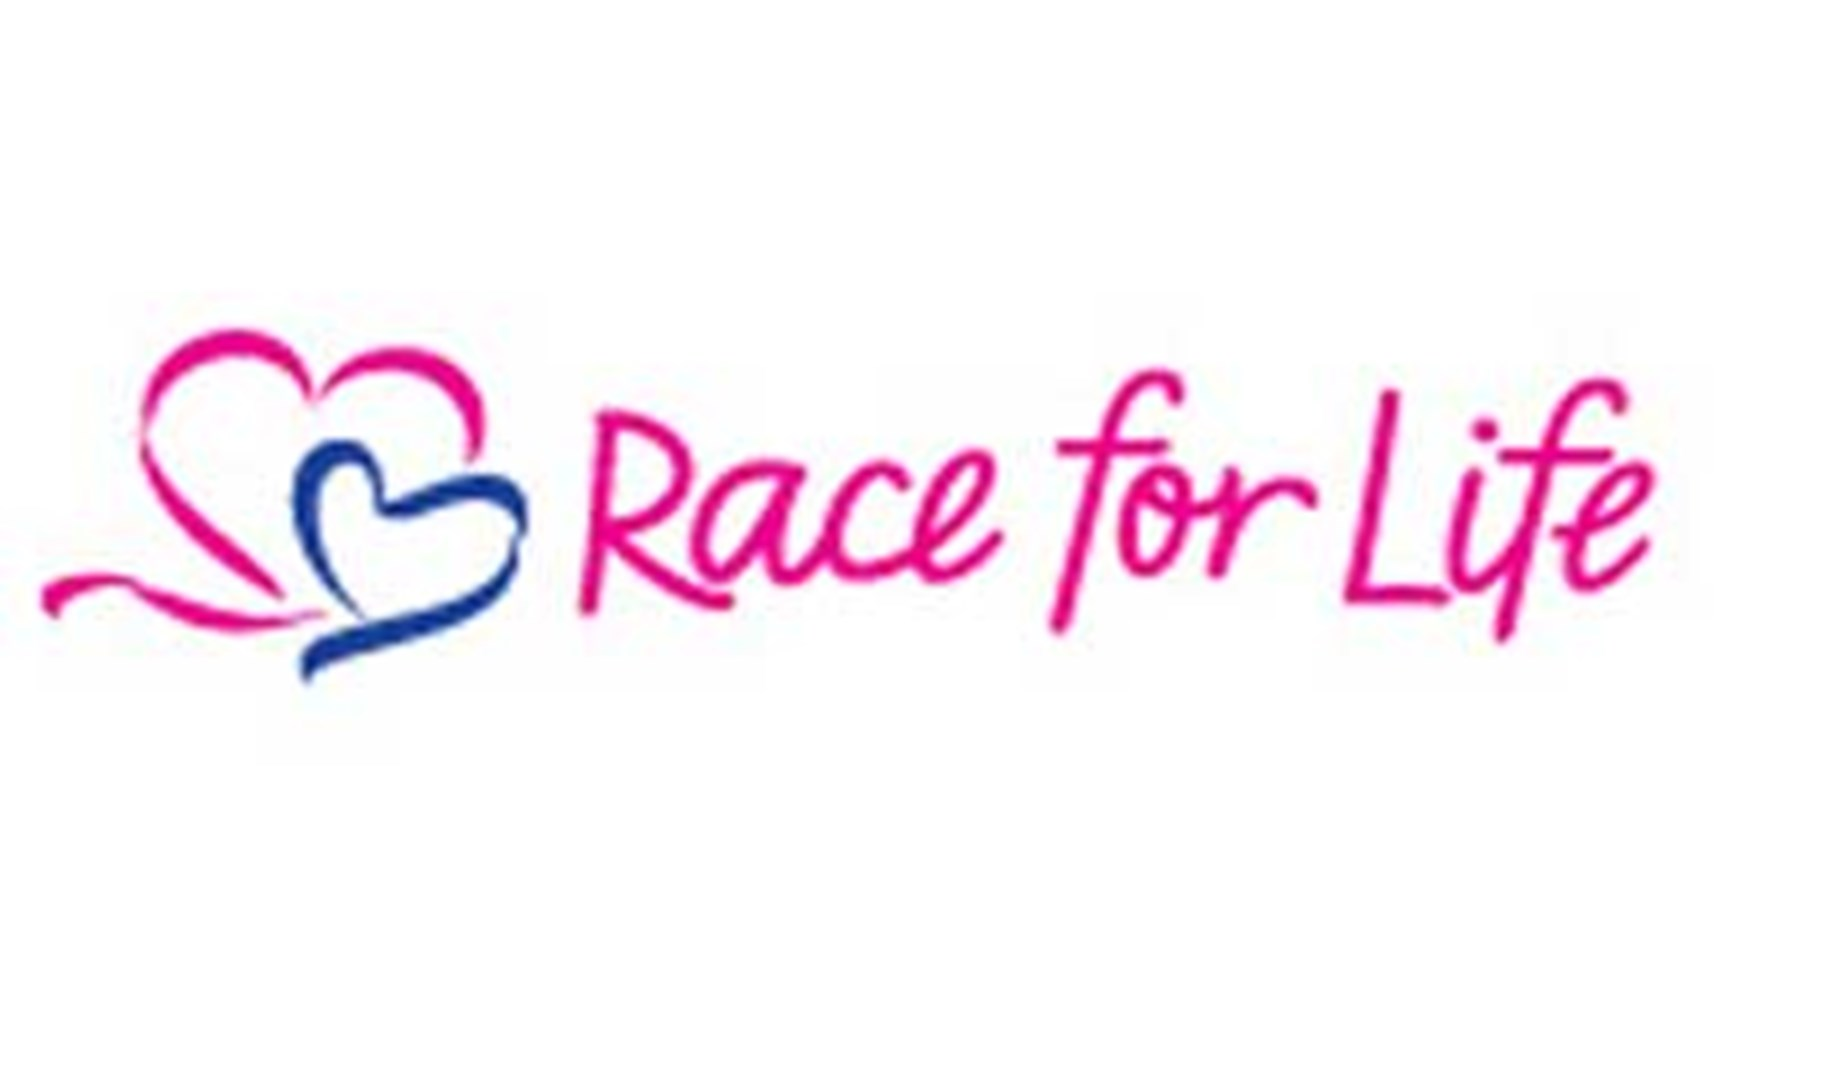 Ace Fa palvi sachania is fundraising for cancer research uk